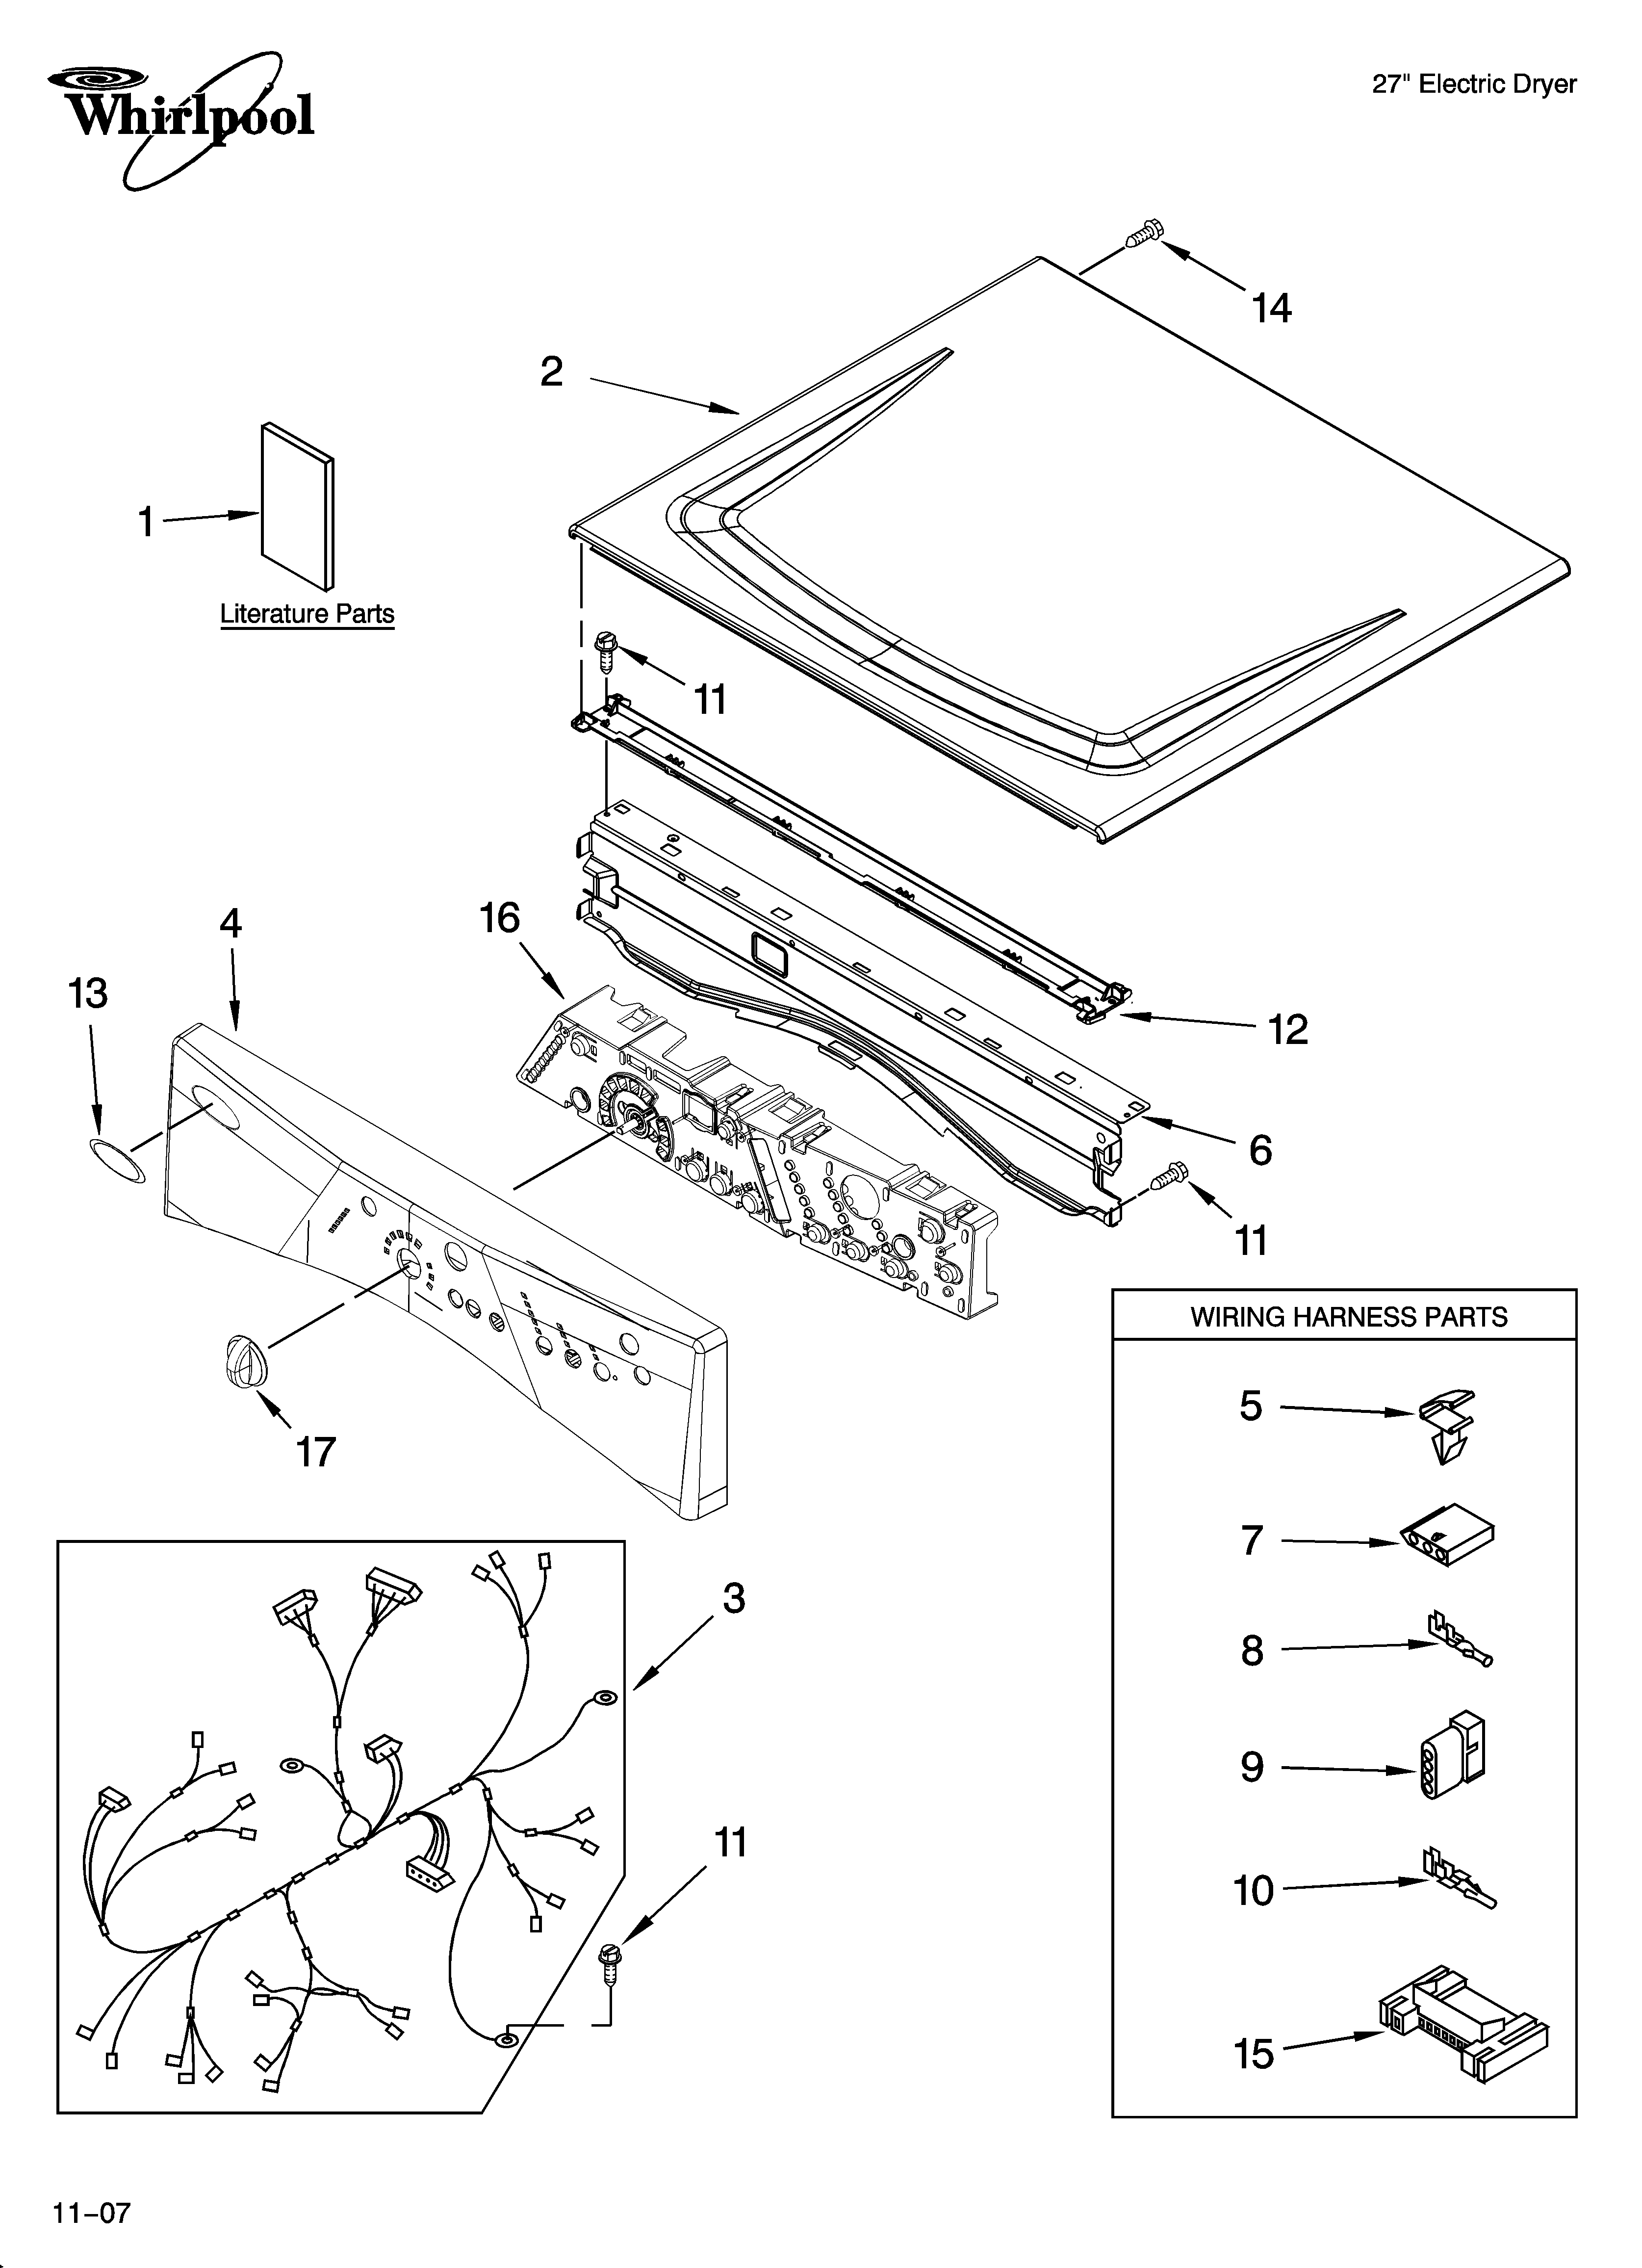 Whirlpool WED8300SW2 top and console parts diagram